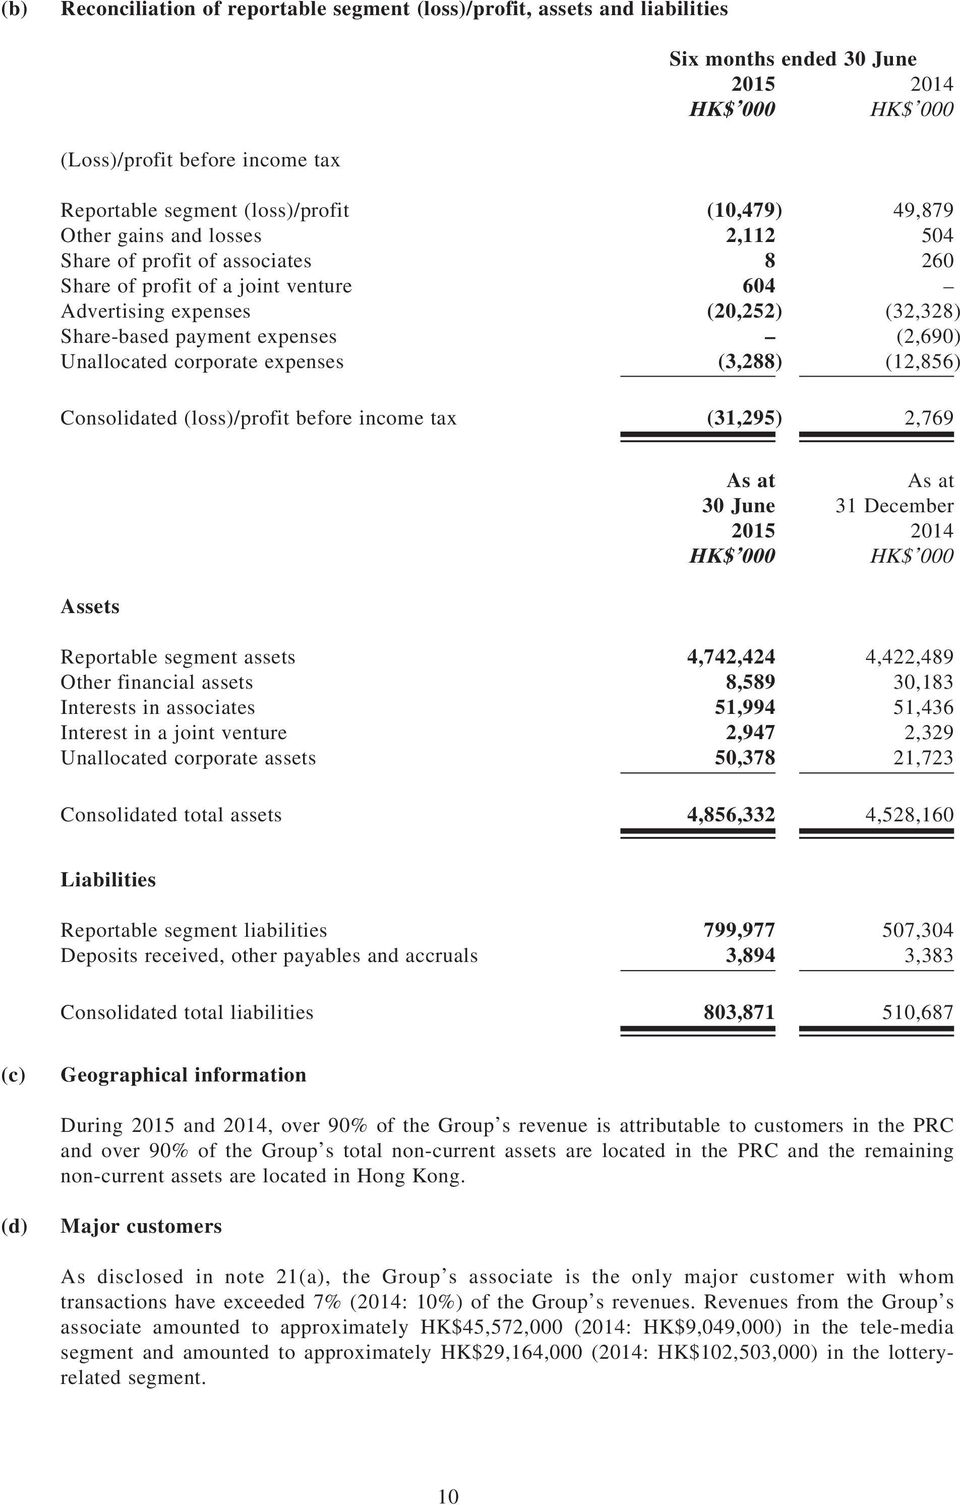 Consolidated (loss)/profit before income tax (31,295) 2,769 30 June 2015 HK$ 000 31 December 2014 HK$ 000 Assets Reportable segment assets 4,742,424 4,422,489 Other financial assets 8,589 30,183